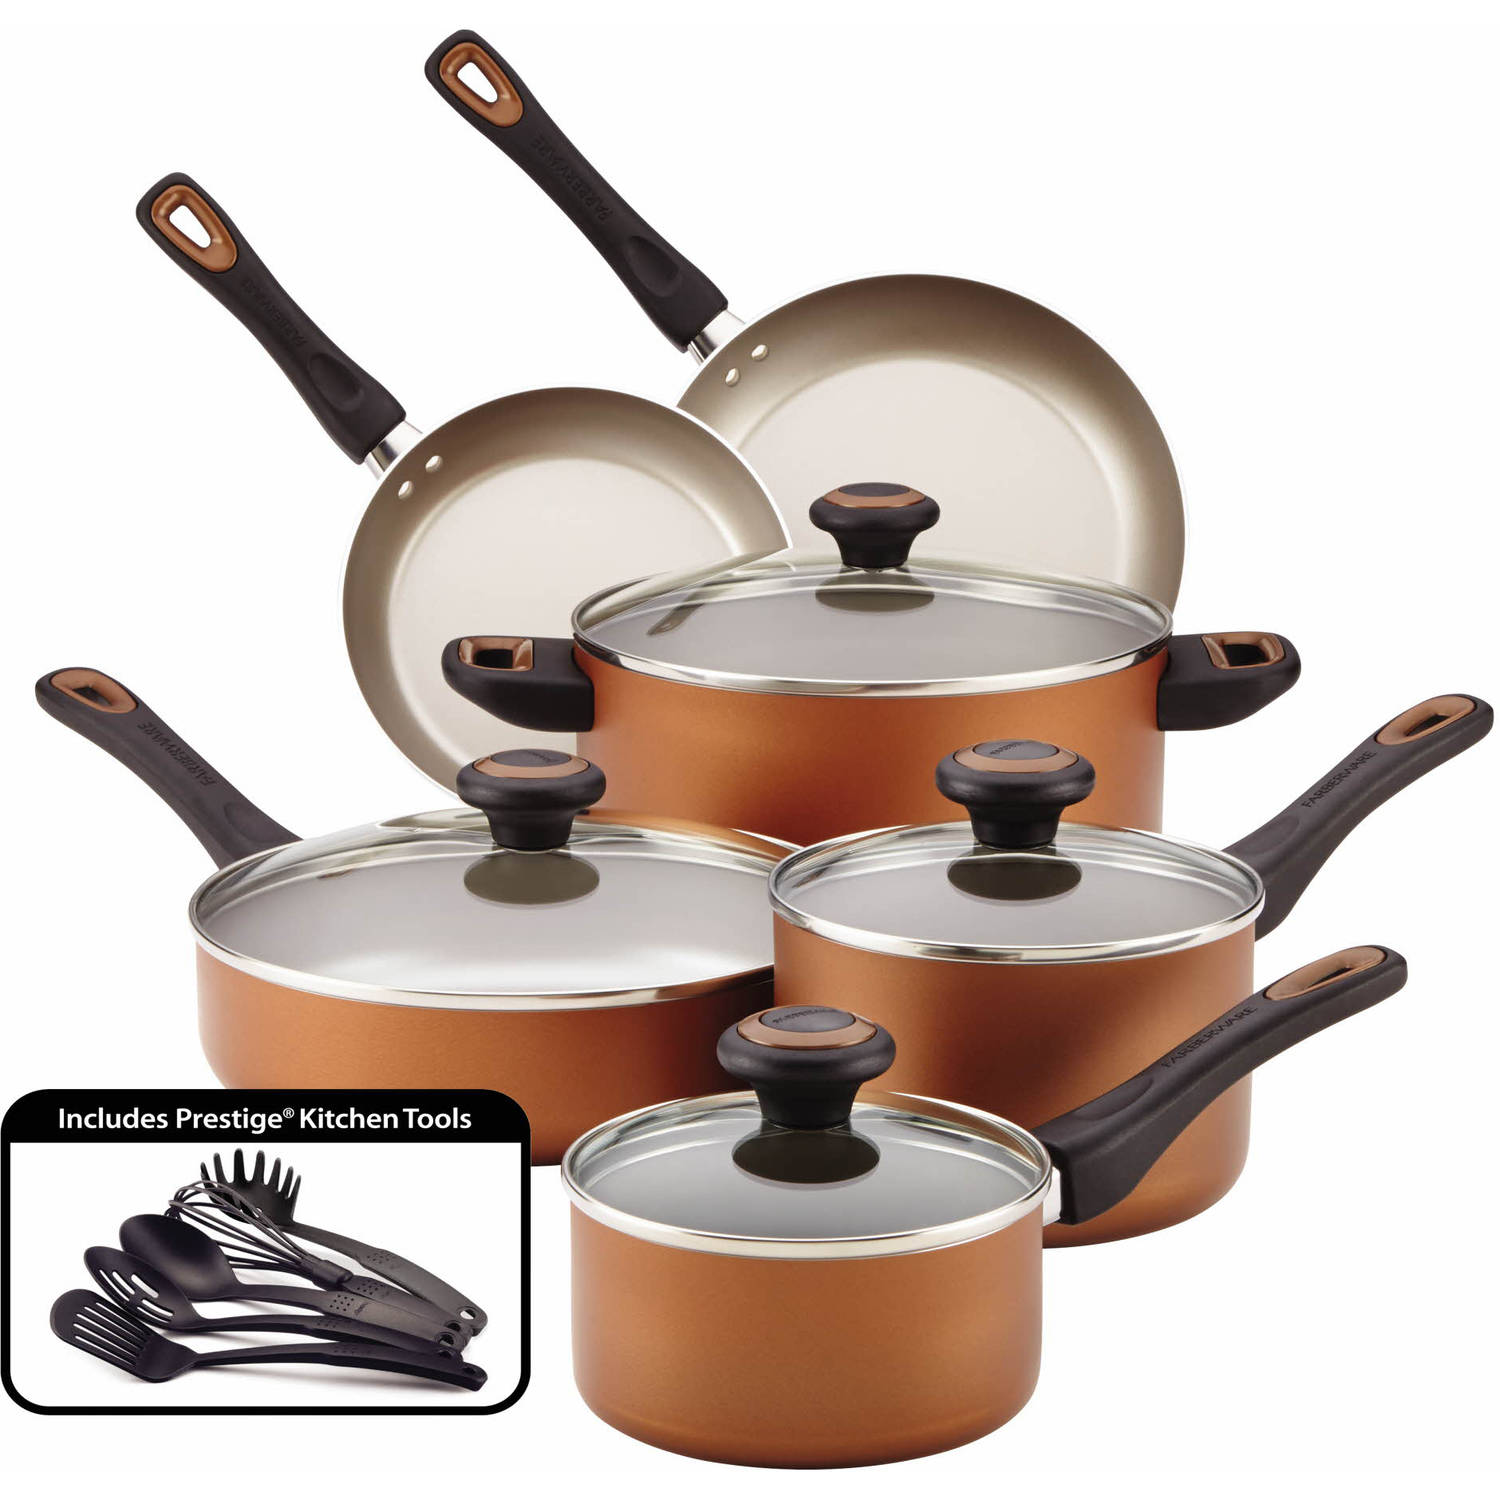 Farberware High-Performance Nonstick 15 Piece Cookware Set